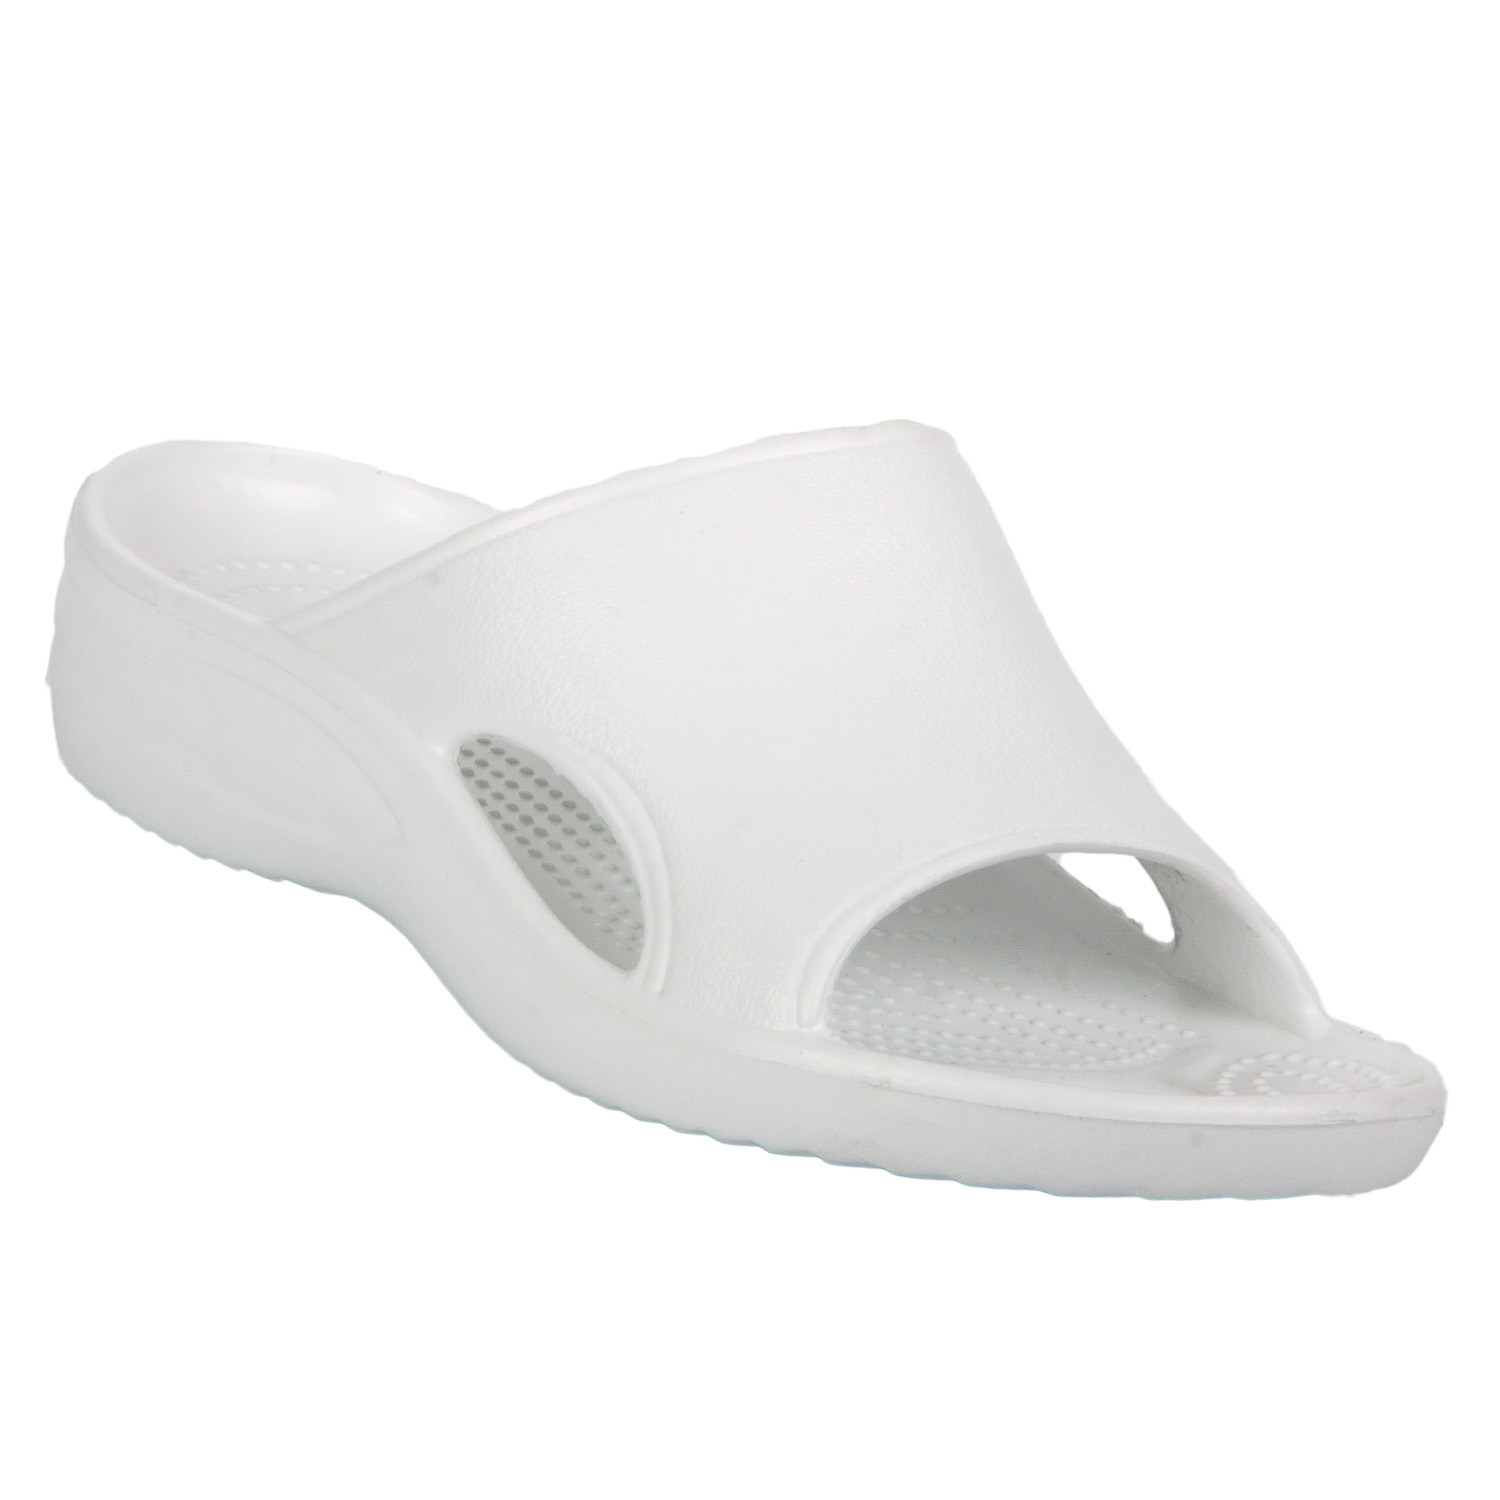 f3180aef5ba9 Women s Dawgs Slides White Size 10